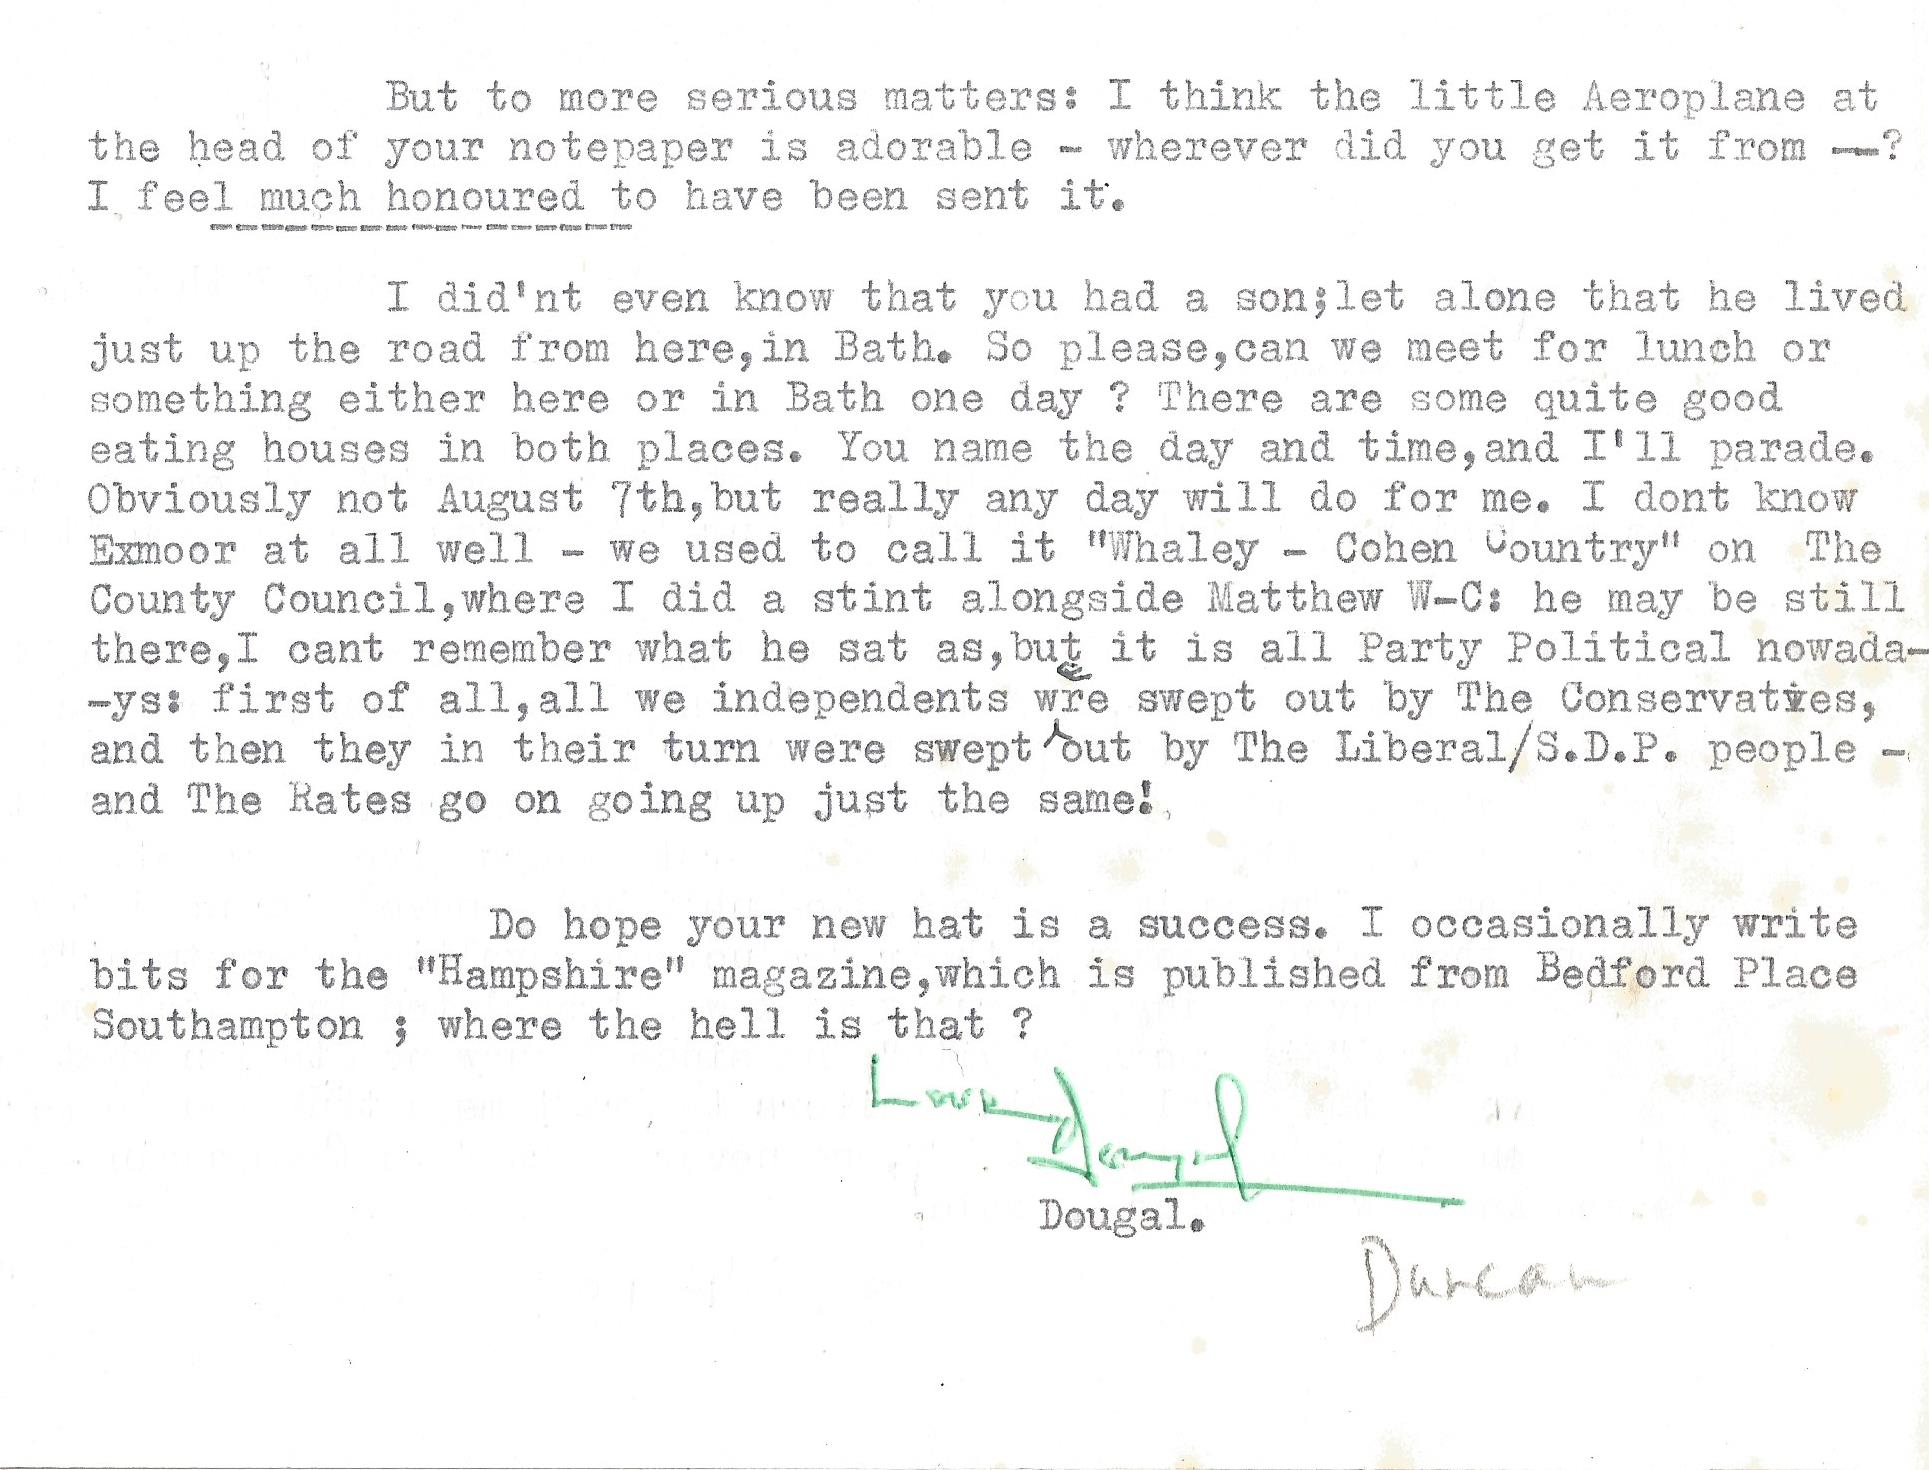 Dougal Duncan Paperback Book Somerset the unknown County signed by the Author on the First Page - Image 3 of 3